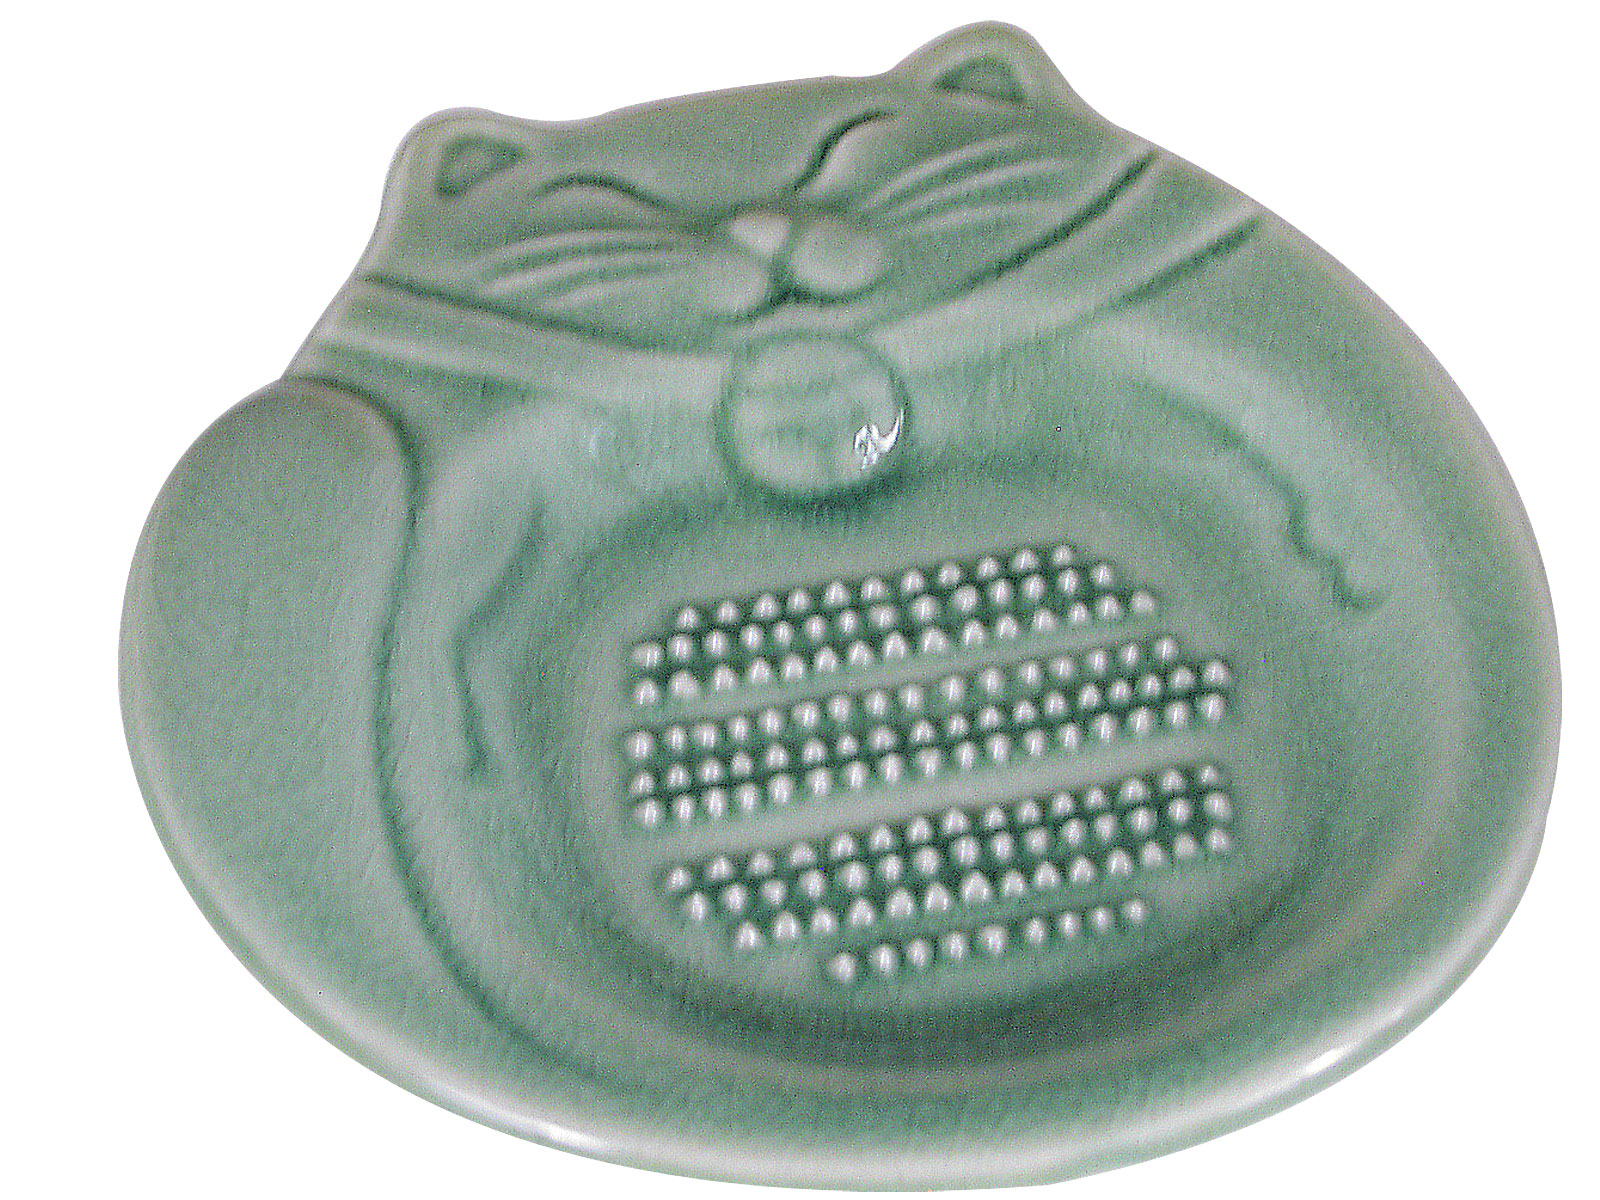 Green Japanese Lucky Cat Ceramic Ginger Grater